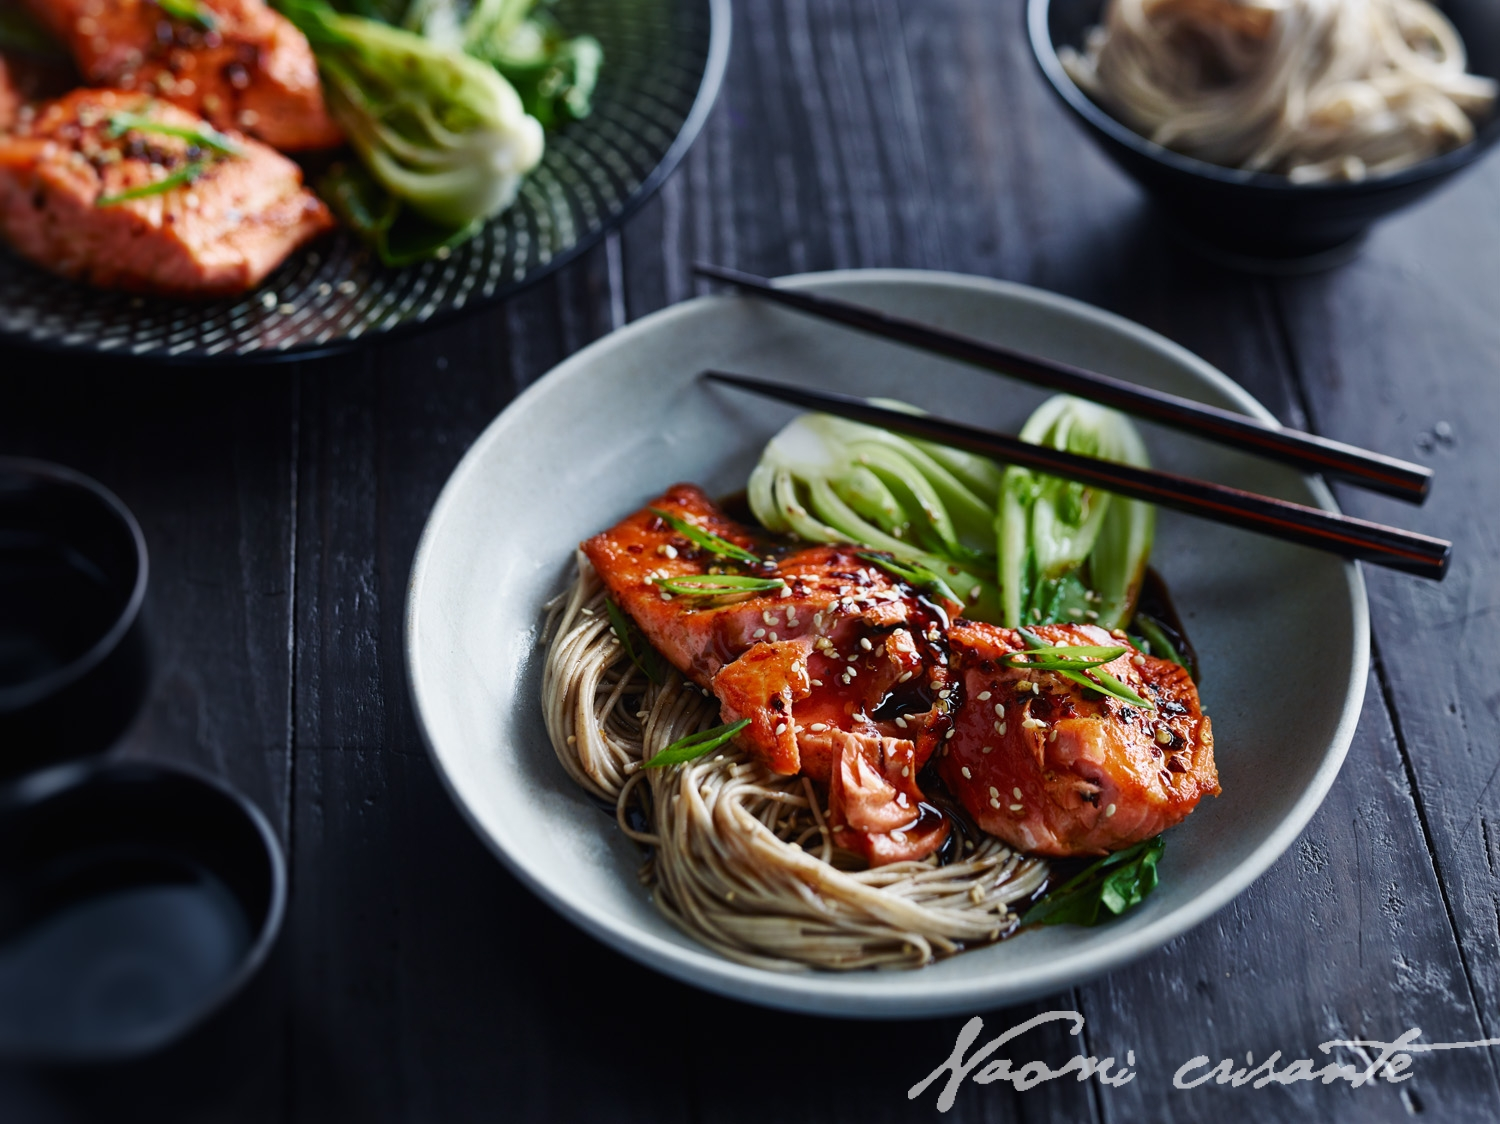 Chilli Seared Salmon with Soba Noodles and Honeyed Balsamic Sauce